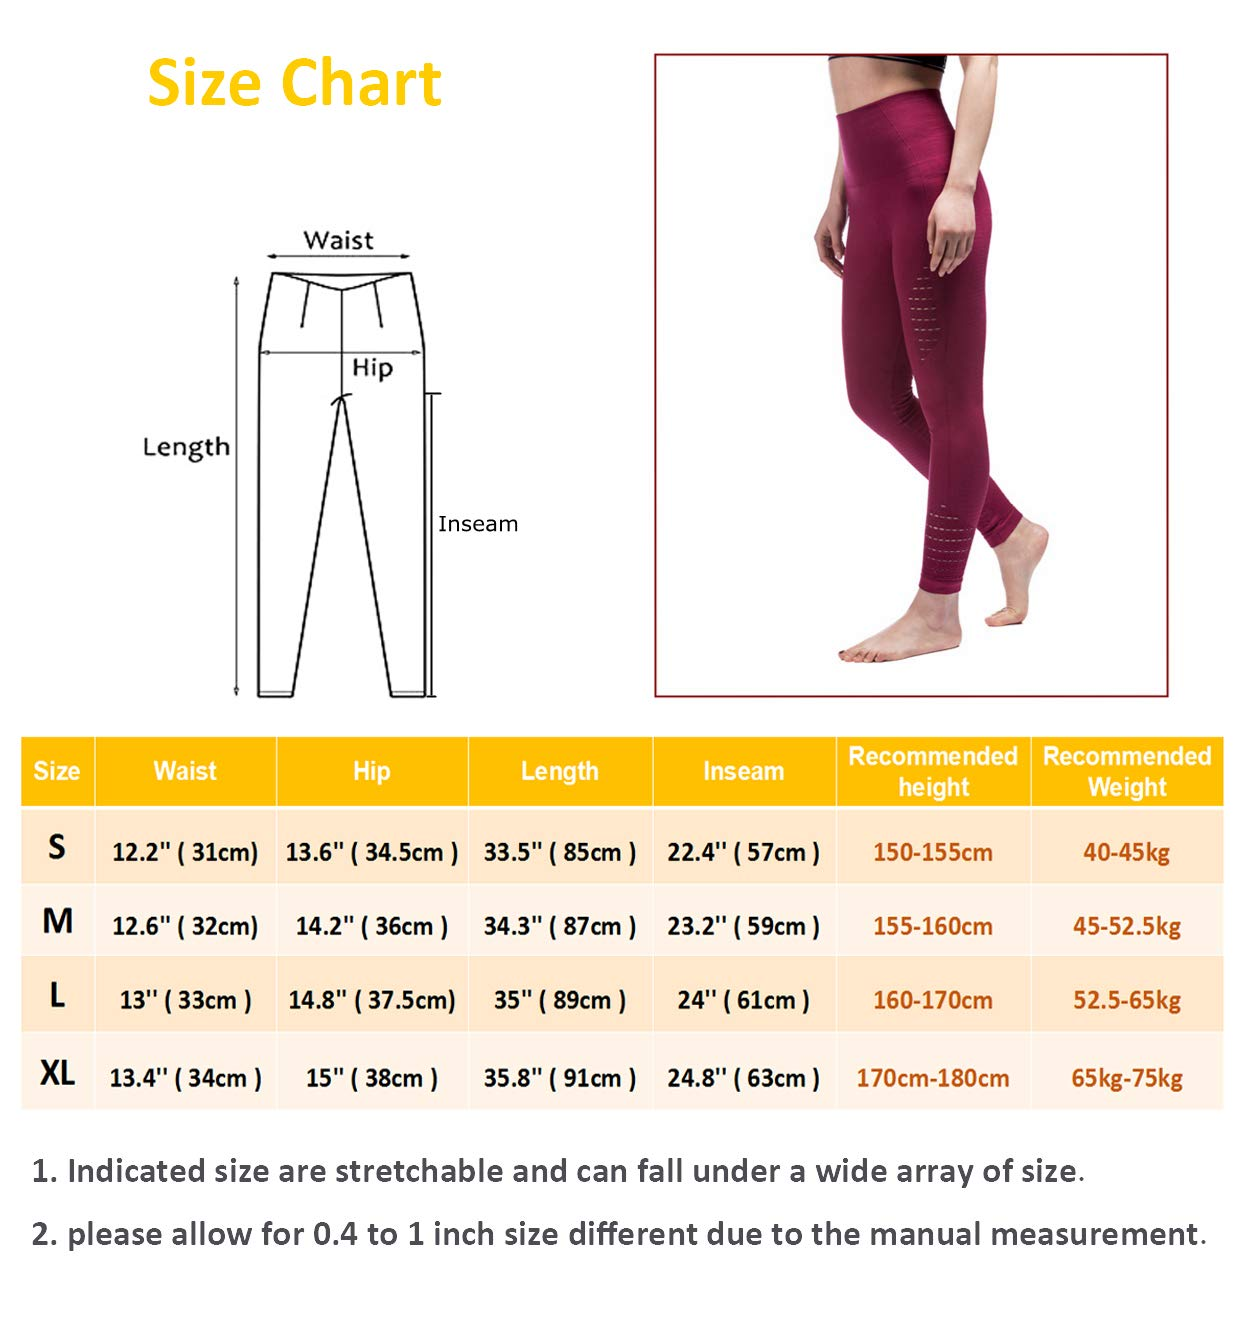 TINLUNG High Waist Yoga Pants with Tummy Control Hollow Out Design Fitness Workout Leggings Running Sports Gym Stretch Tights Trousers for Women Wine Red M